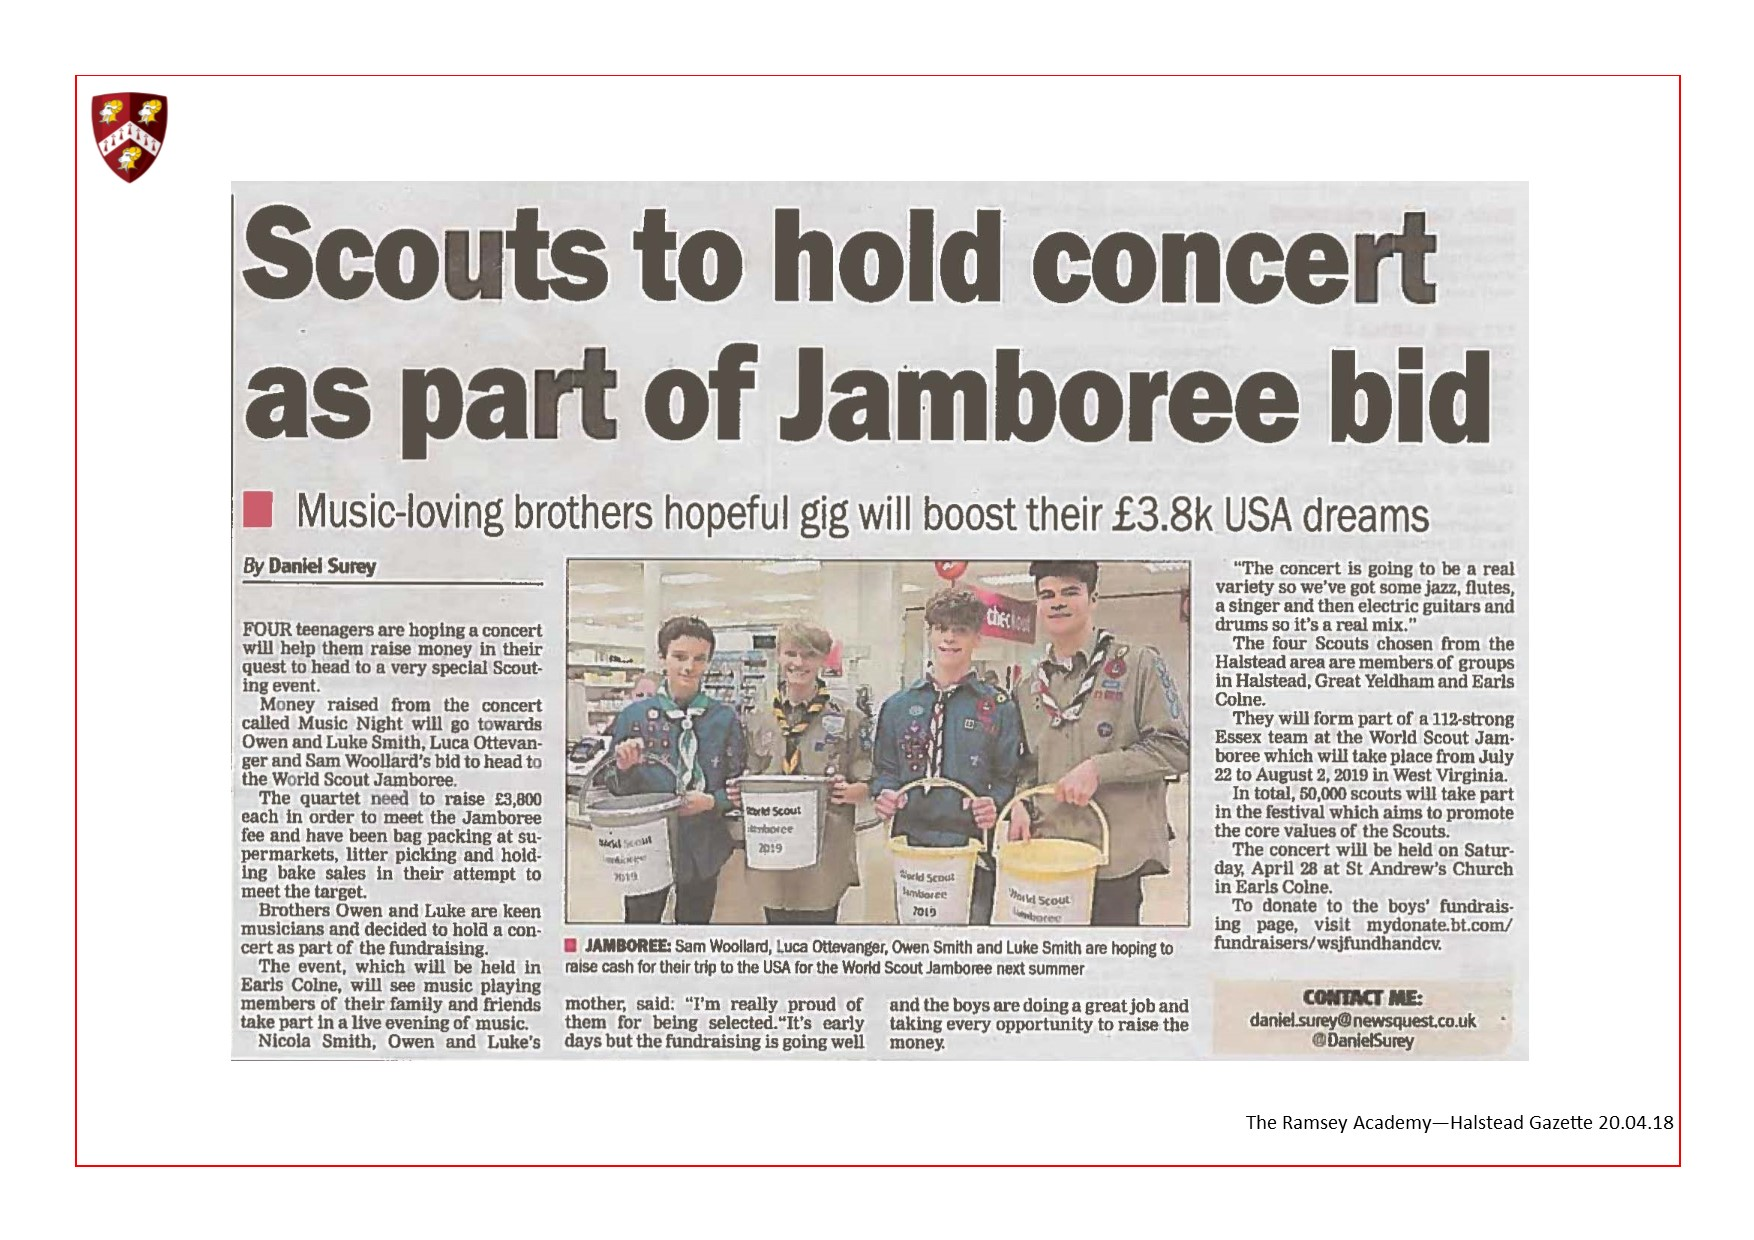 Scouts To Hold Concert As Part Of Jamboree Bid 20.04.18